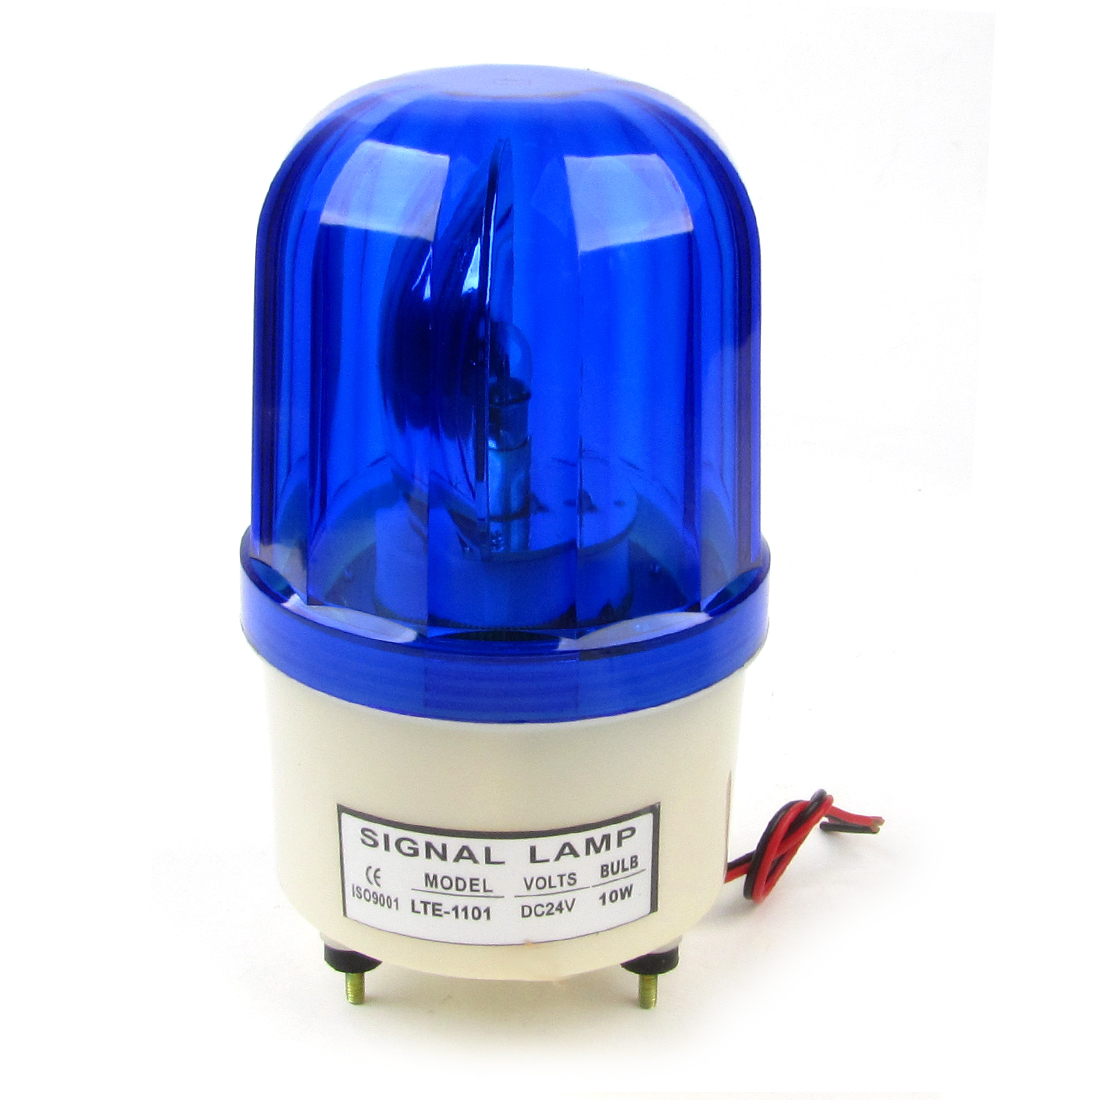 LTE-1101 Vehicles Blue Strobe Rotary Warning Lamp Light DC24V 10W